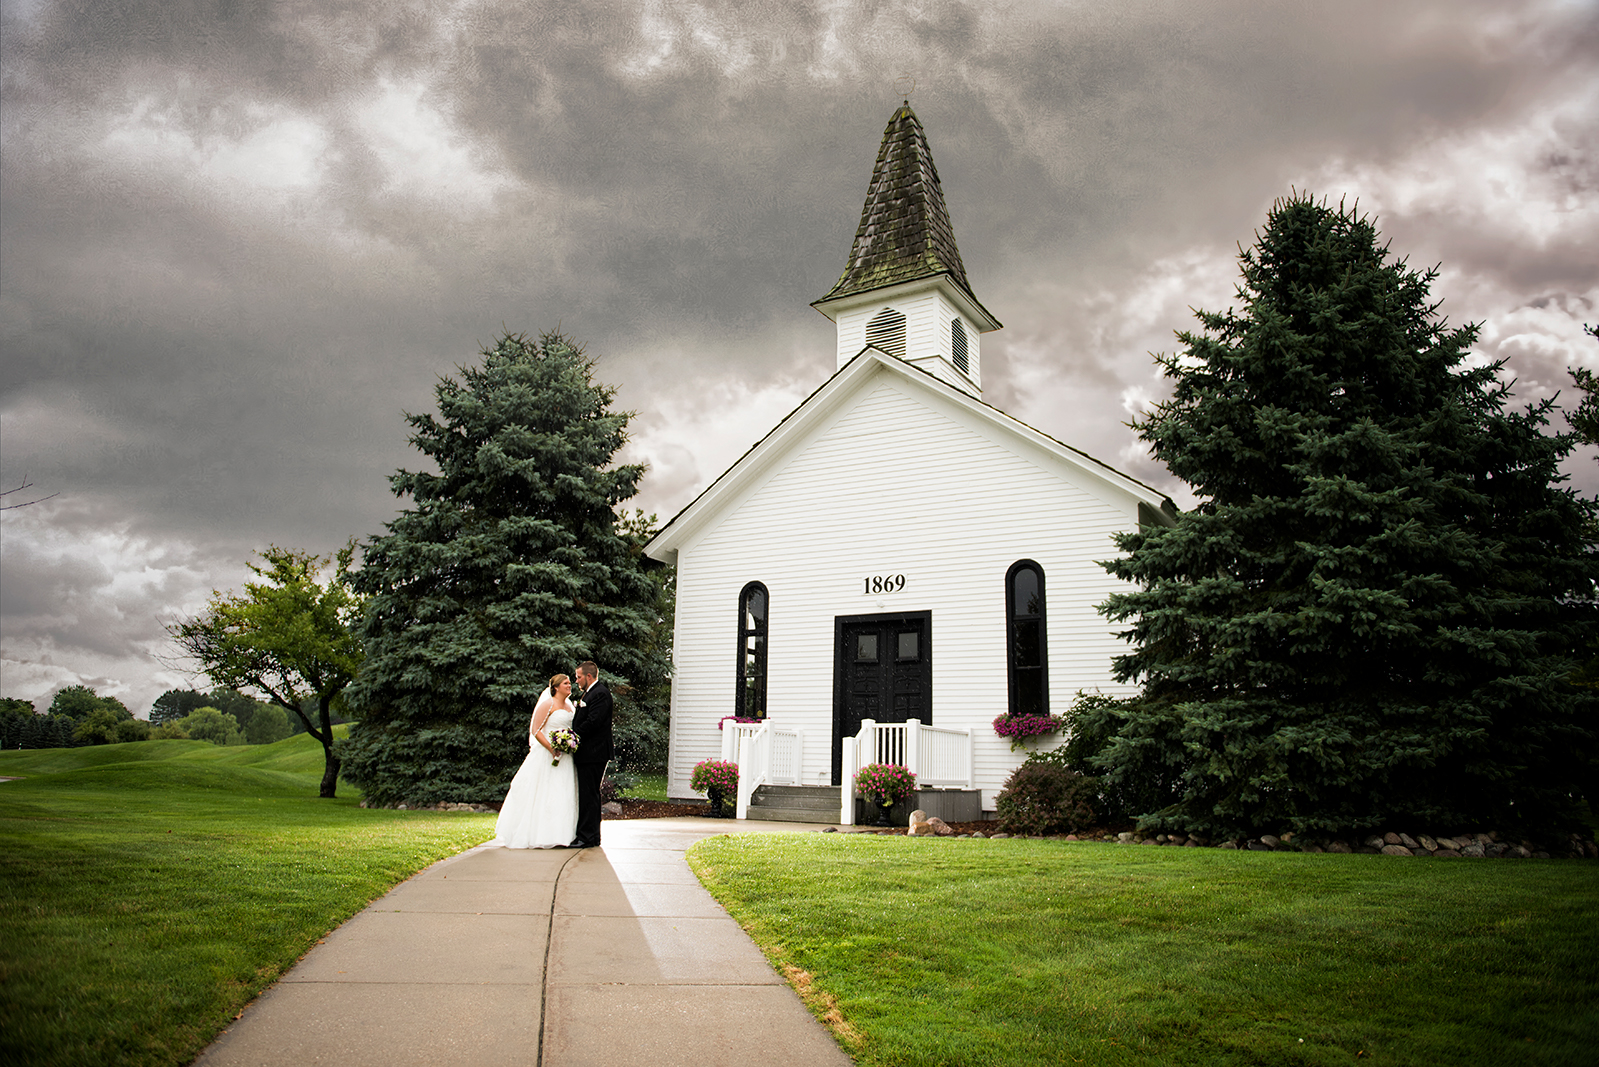 Richard and Renee Wedding photo by Warner Photography in Midland Michigan